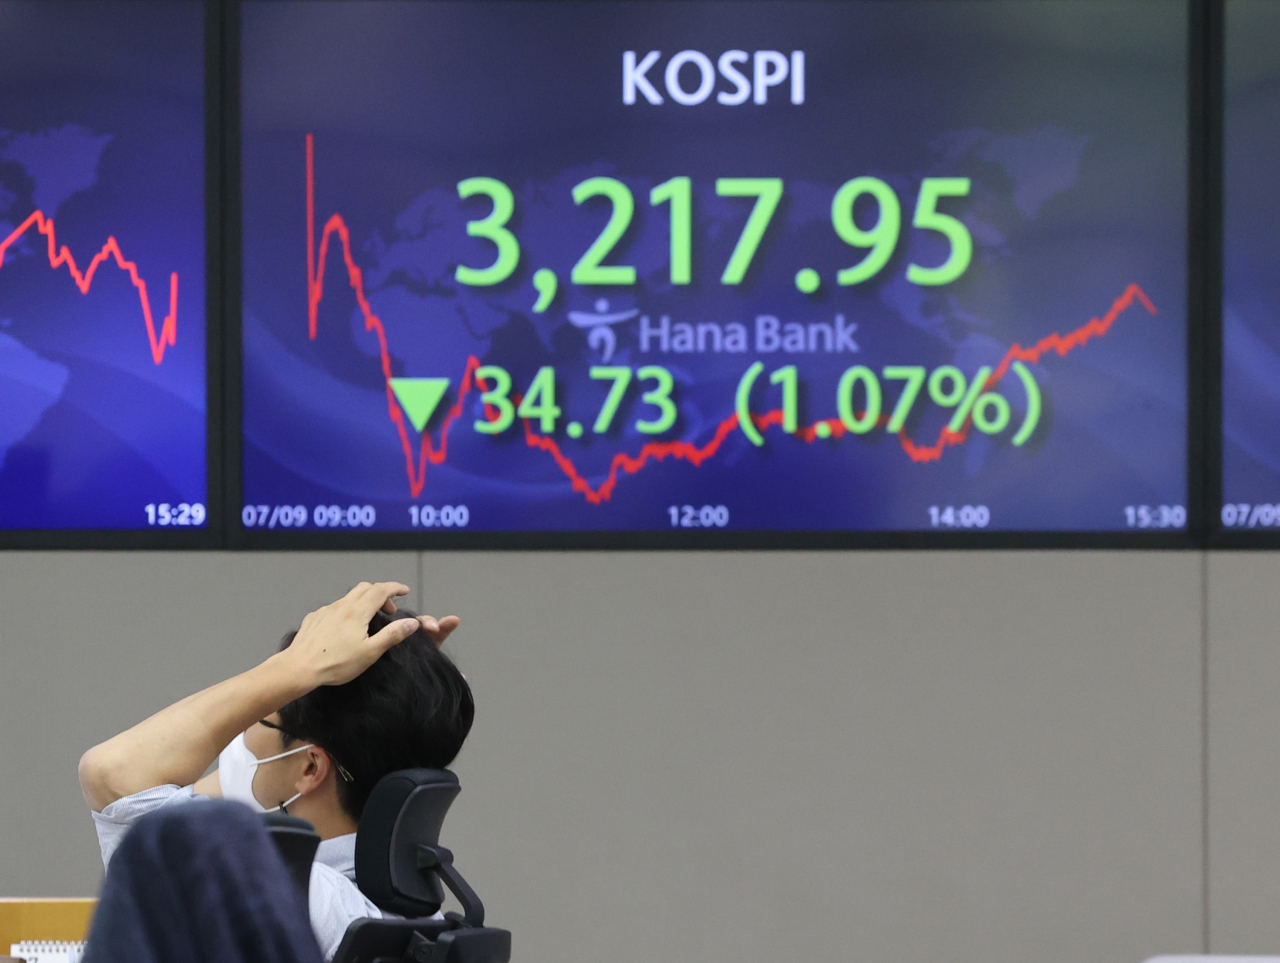 Electronic signboards at a Hana Bank dealing room in Seoul show the benchmark Korea Composite Stock Price Index (KOSPI) closed at 3,217.95 on Friday, down 34.73 points, or 1.07 percent, from the previous session's close. (Yonhap)